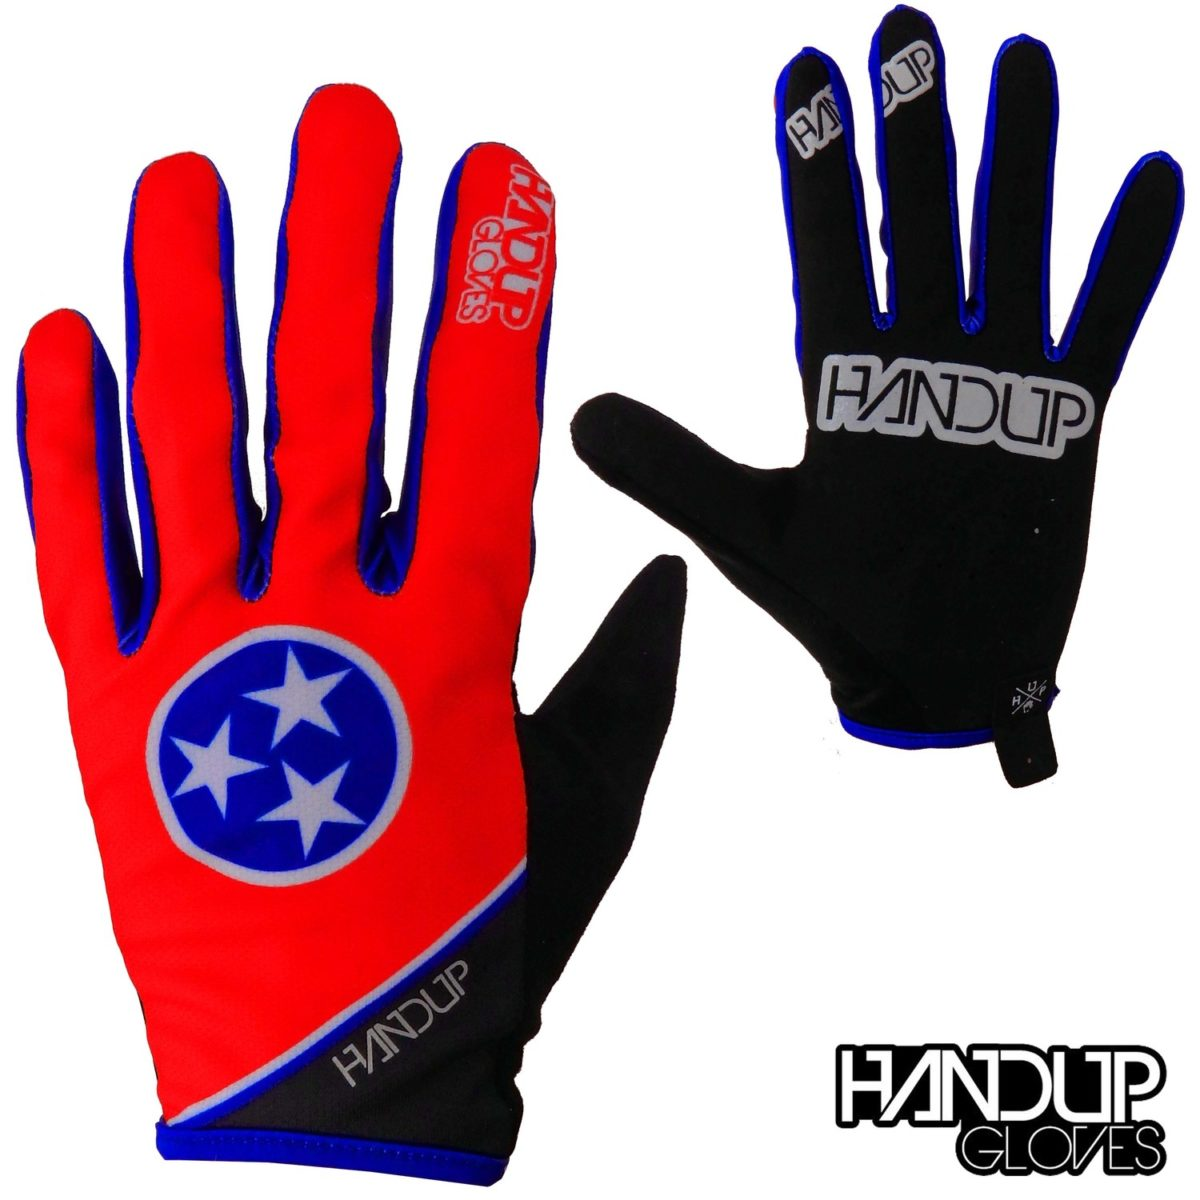 Handup Gloves Goes Small Batch, Adds Lines, Colors, Hats